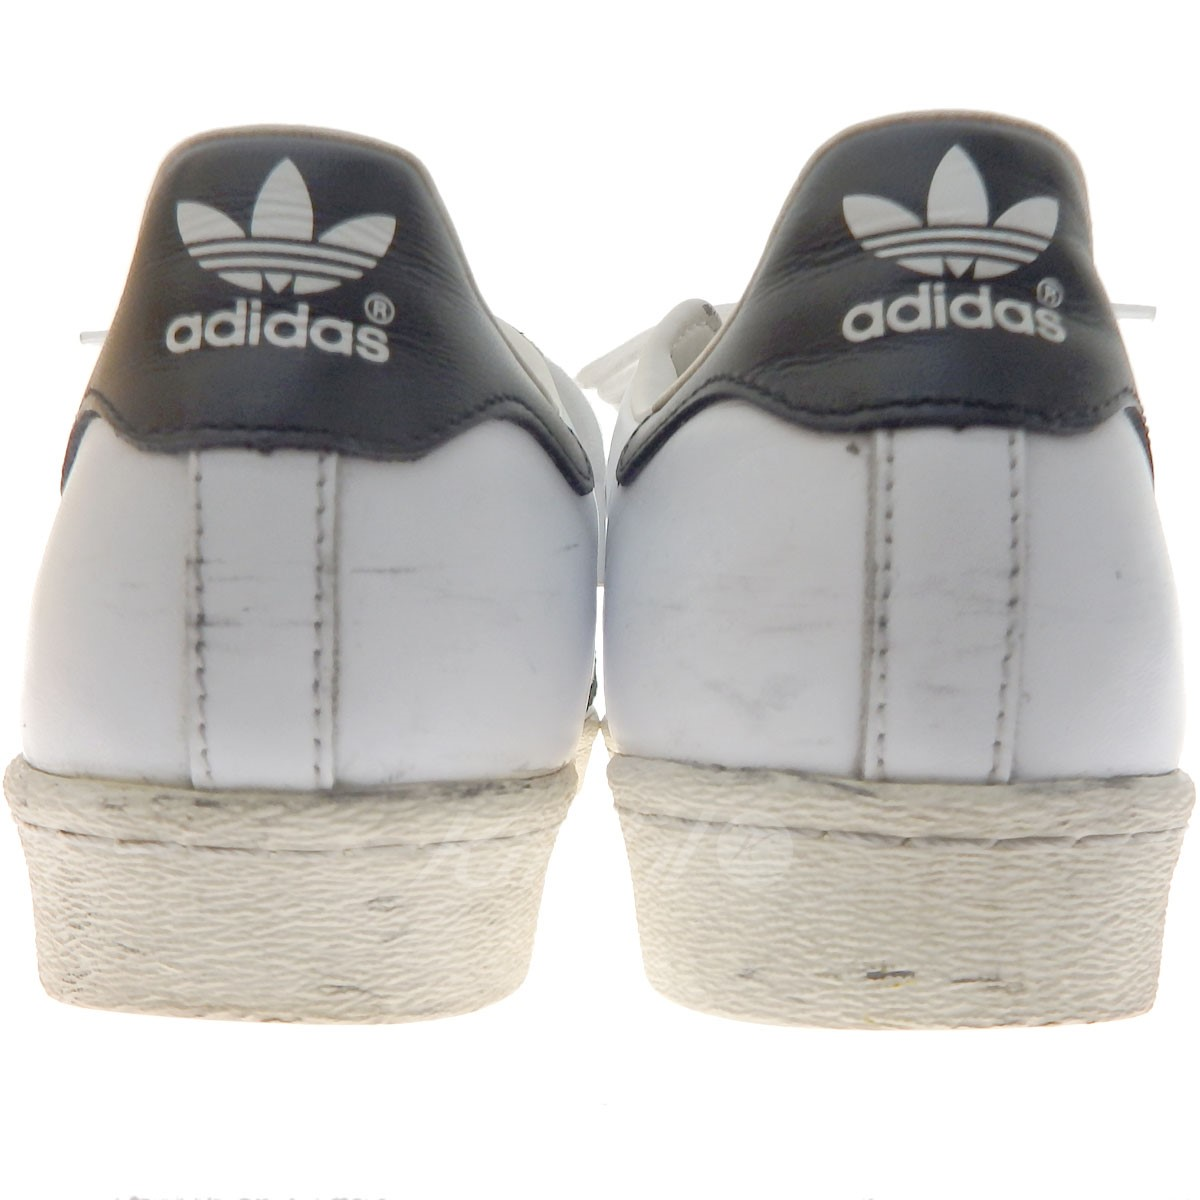 adidas SUPERSTAR 80s low-frequency cut sneakers white X black size: 26. 5cm (Adidas)